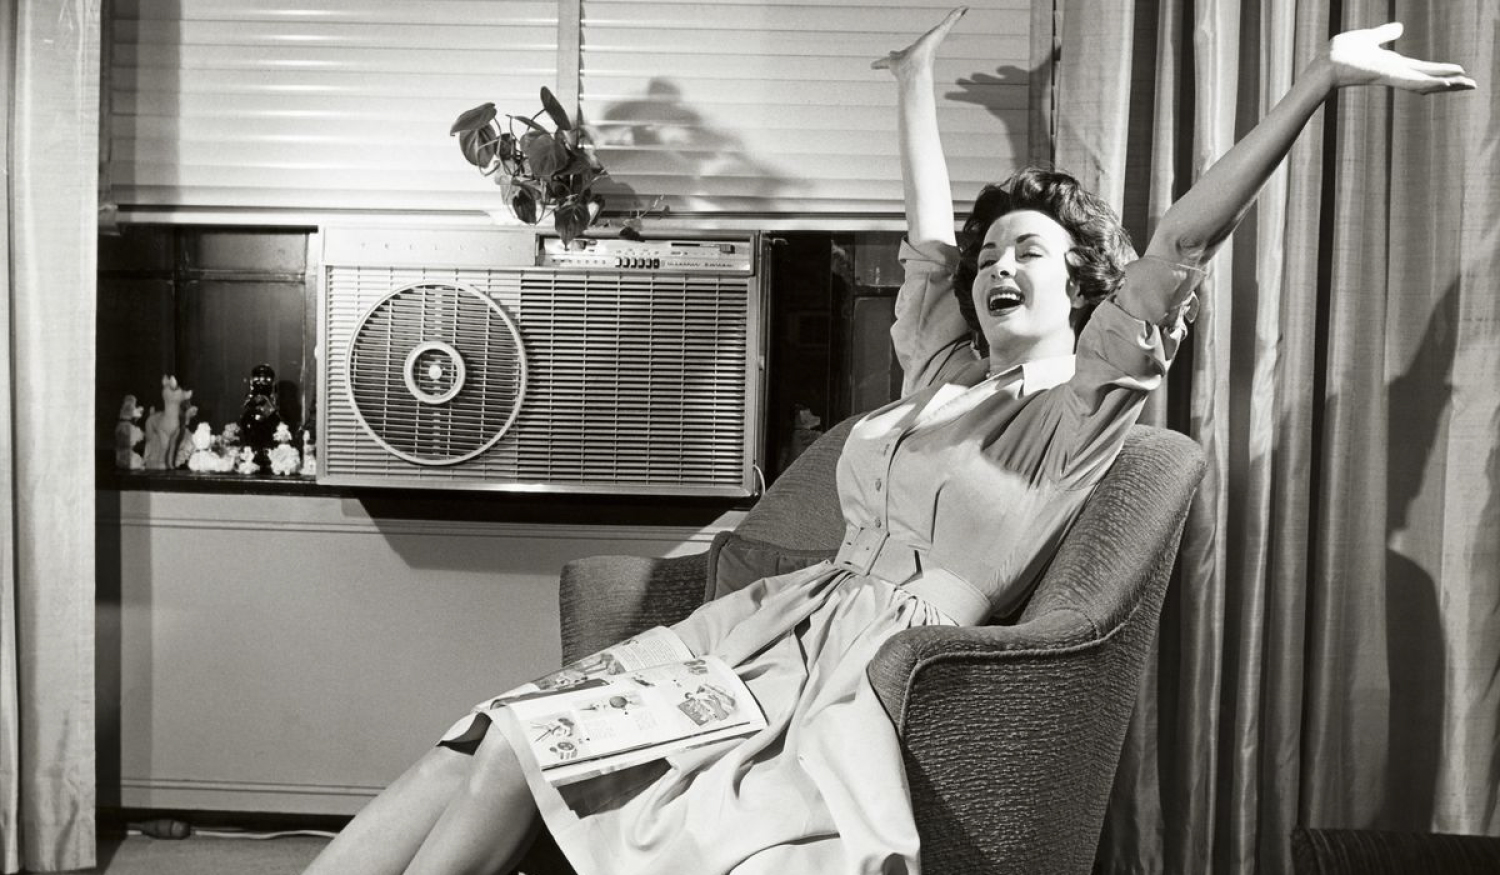 Photo of a woman enjoying window air conditioning in the 1950s.